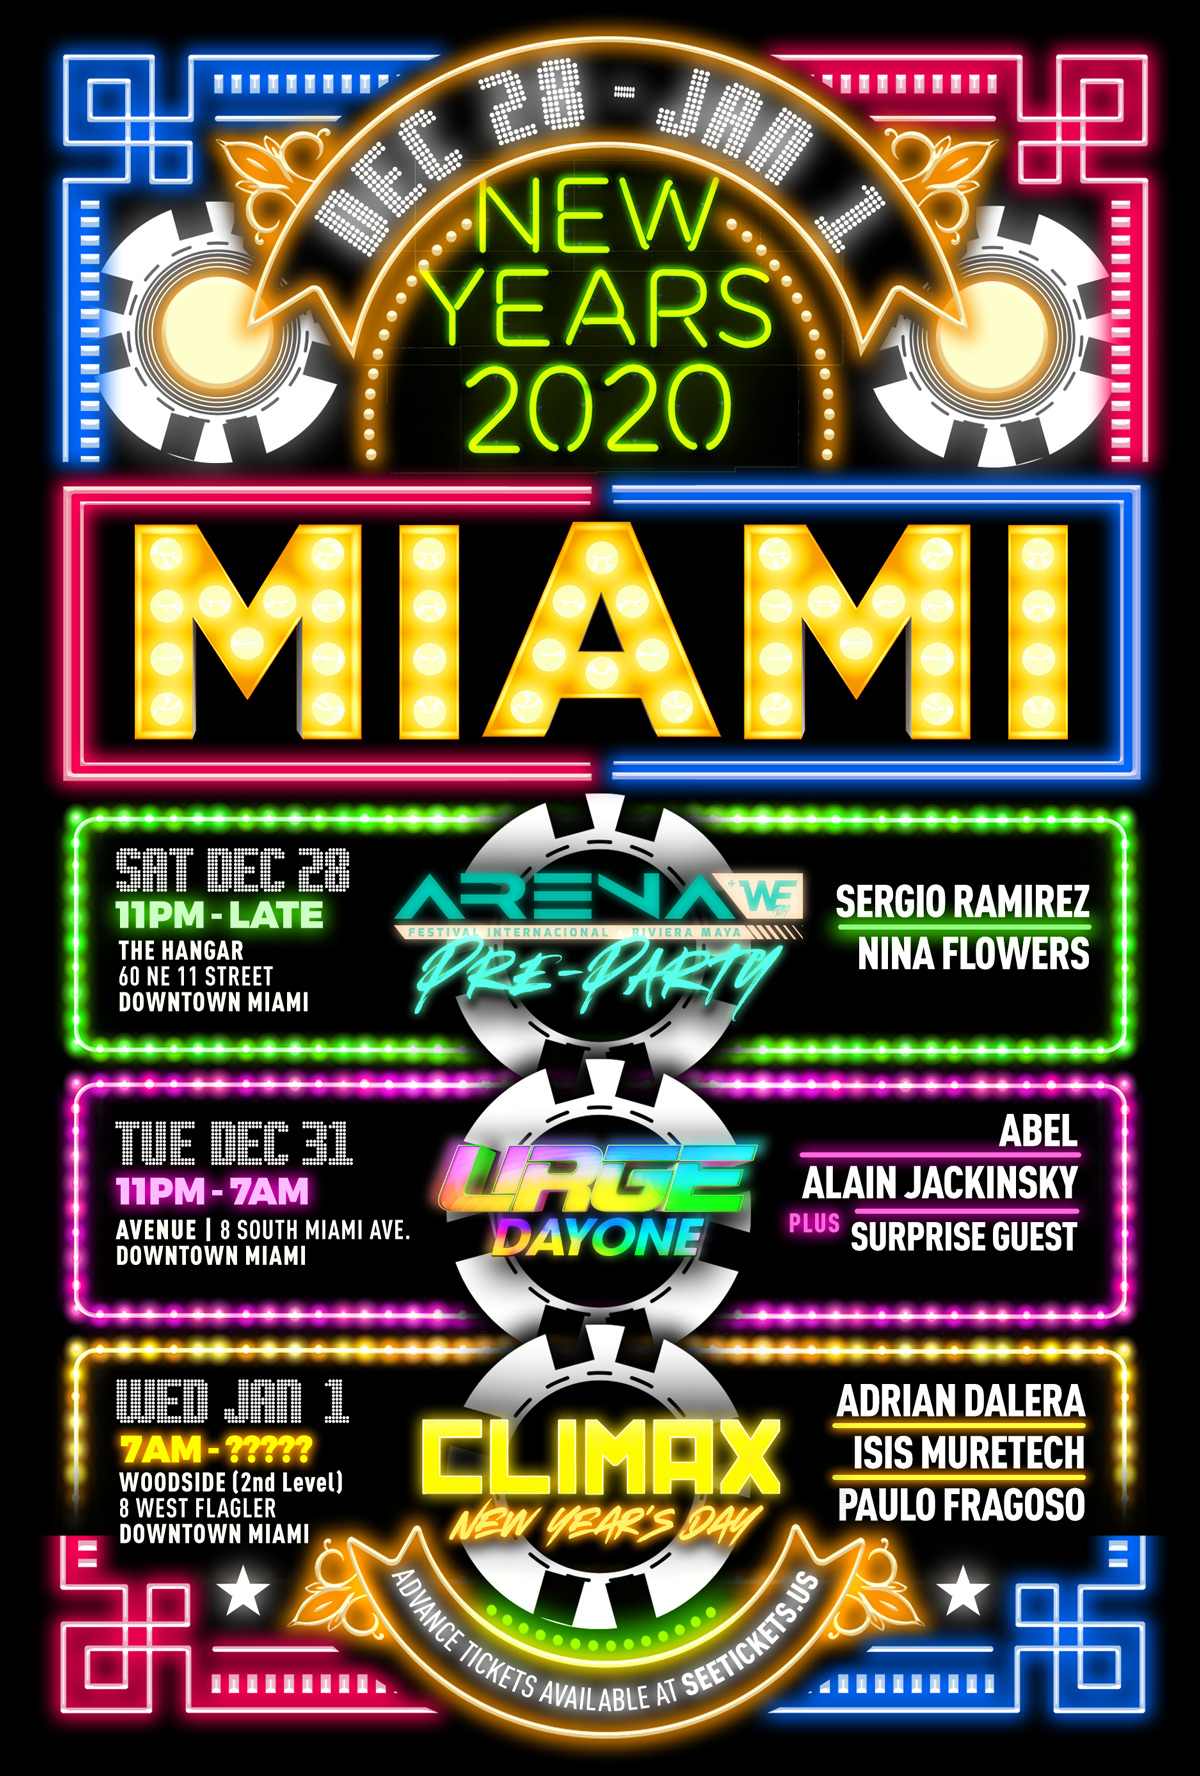 Buy Tickets to Miami New Years 2020 on Dec 28, 2019 - Jan 01,2020